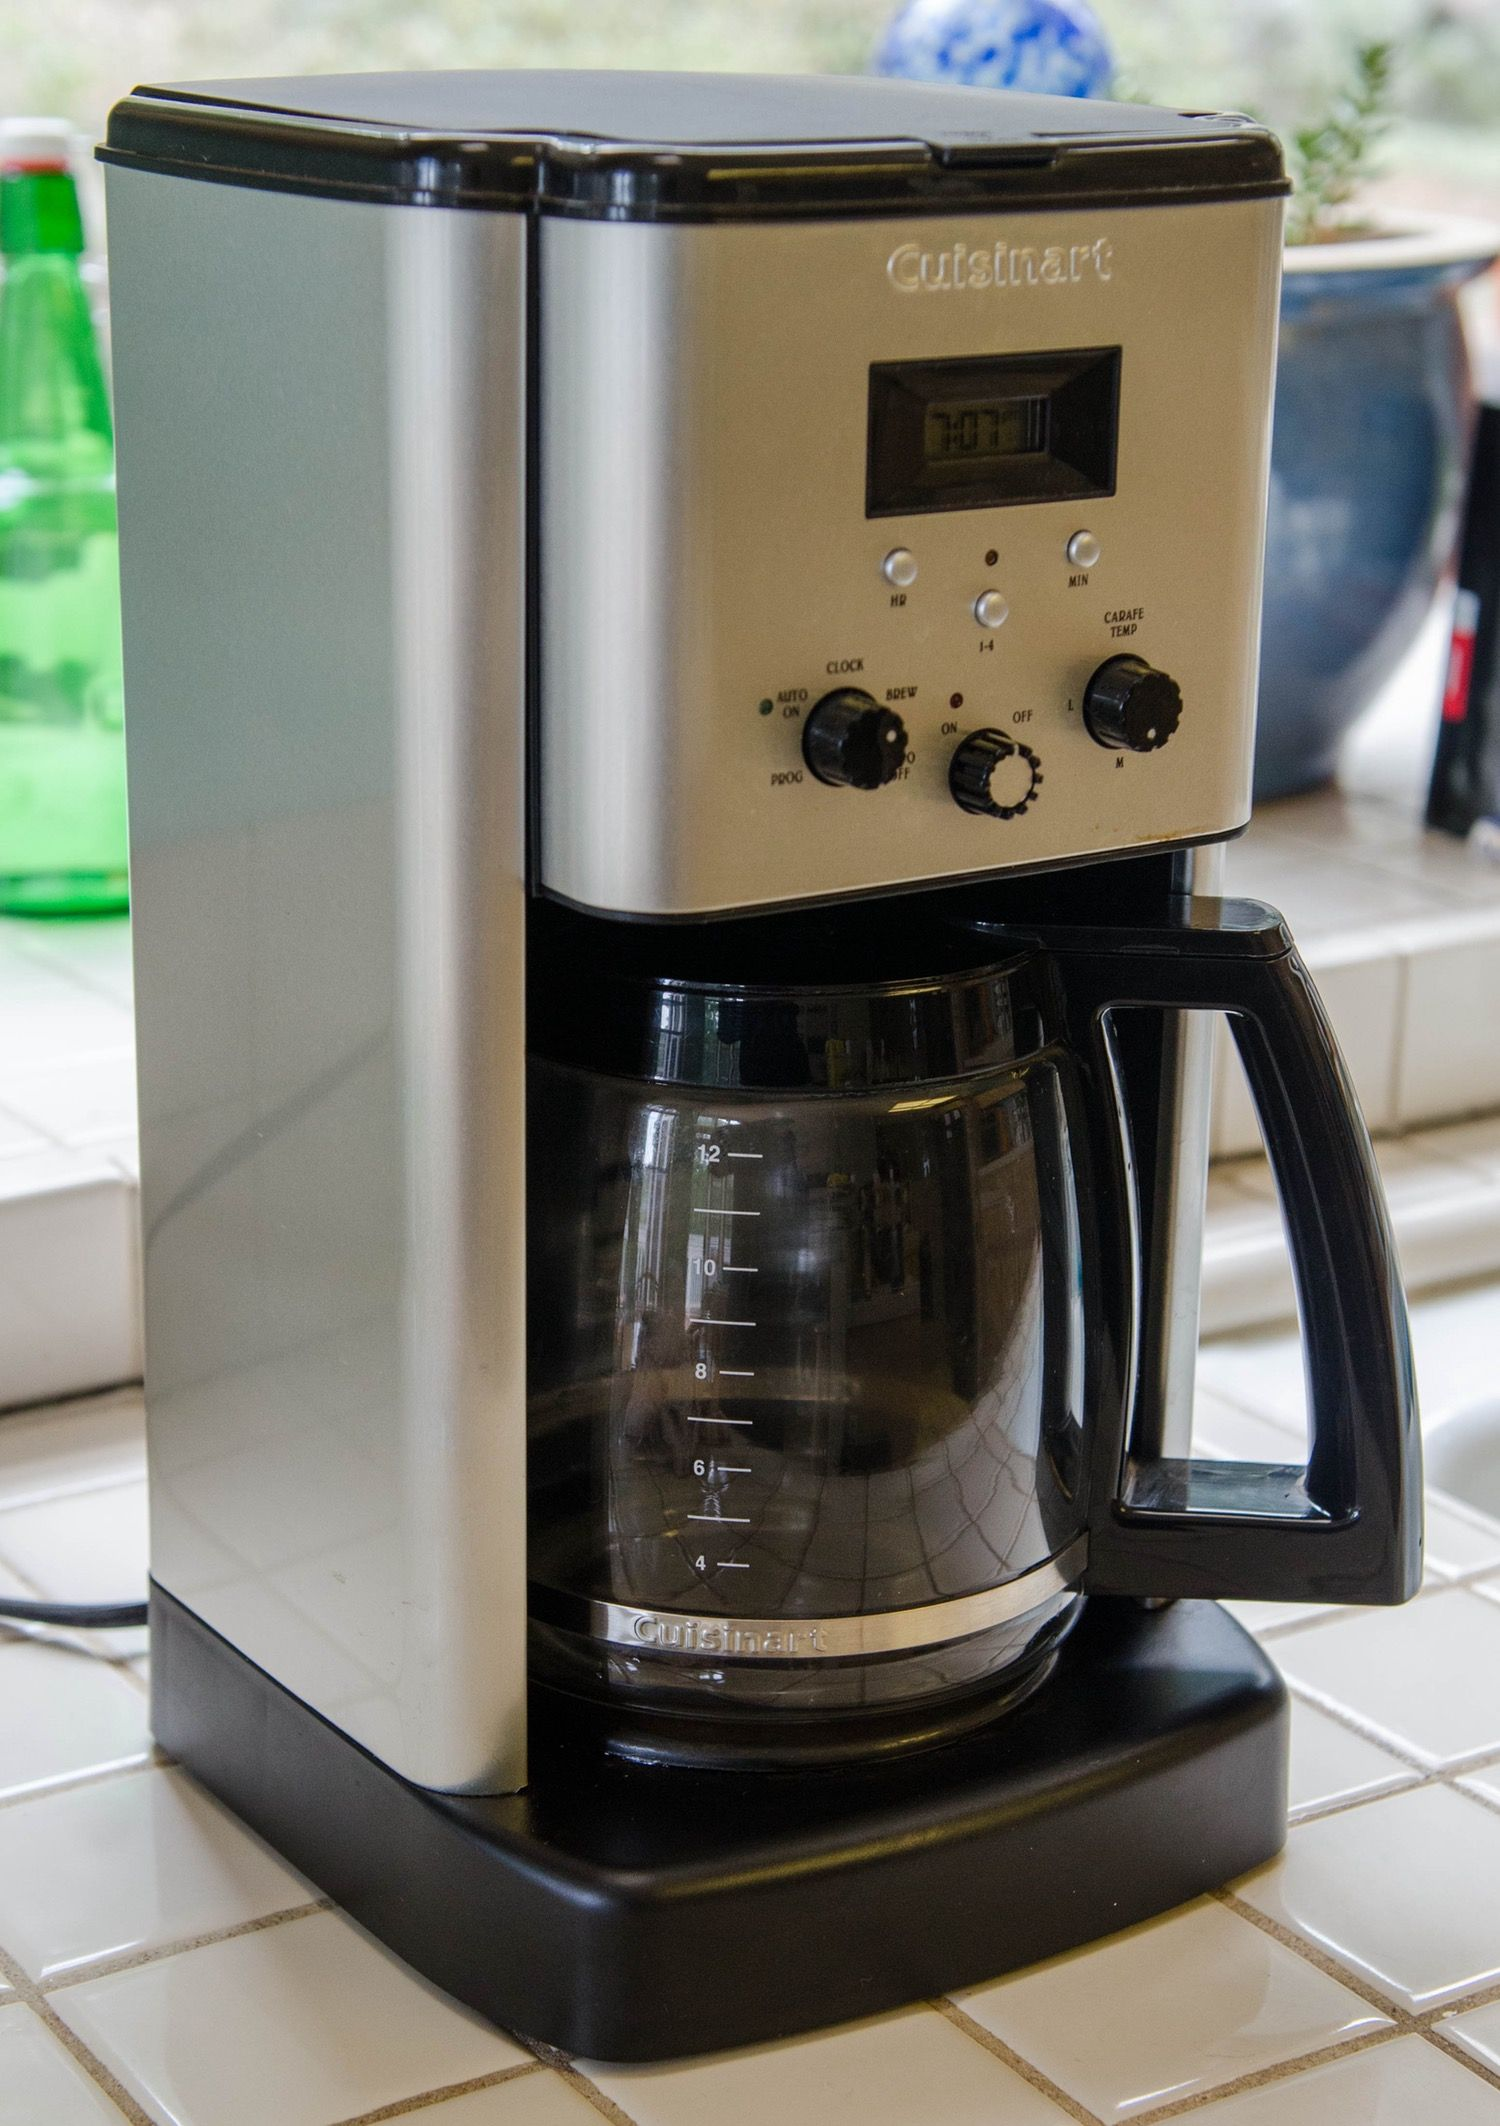 How To Clean A Coffee Maker With Images Coffee Maker Cleaning Clean Dishwasher Cleaning Hacks